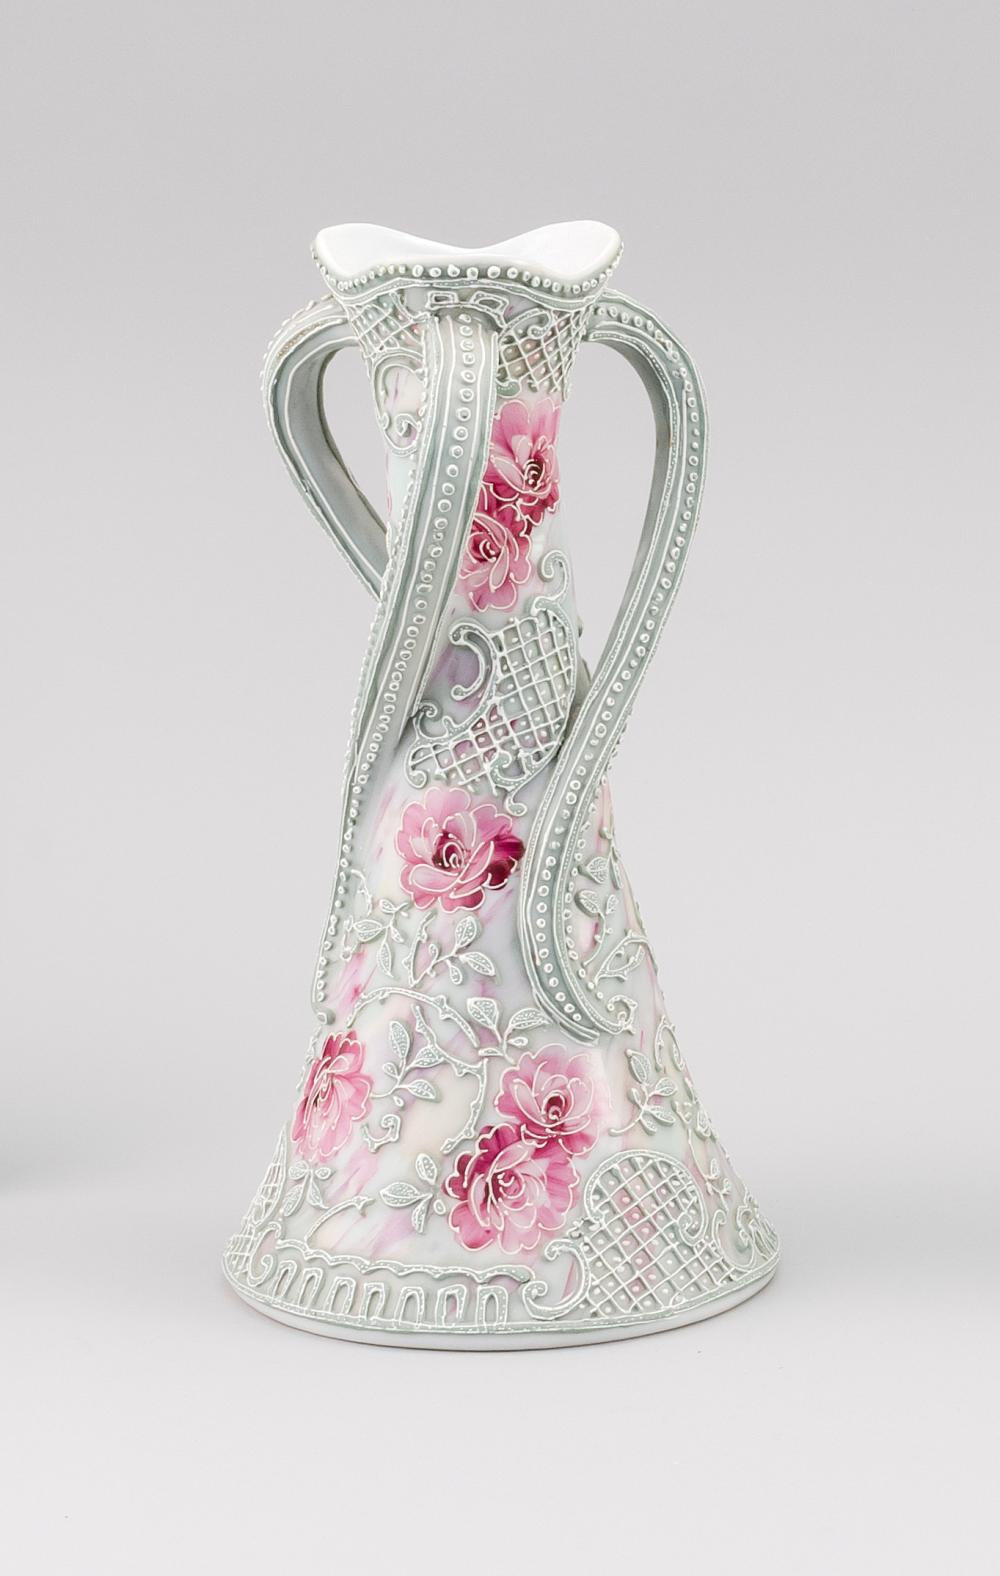 MORIAGE NIPPON PORCELAIN VASE Conical, with three twisting handles and rose decoration. Height 10